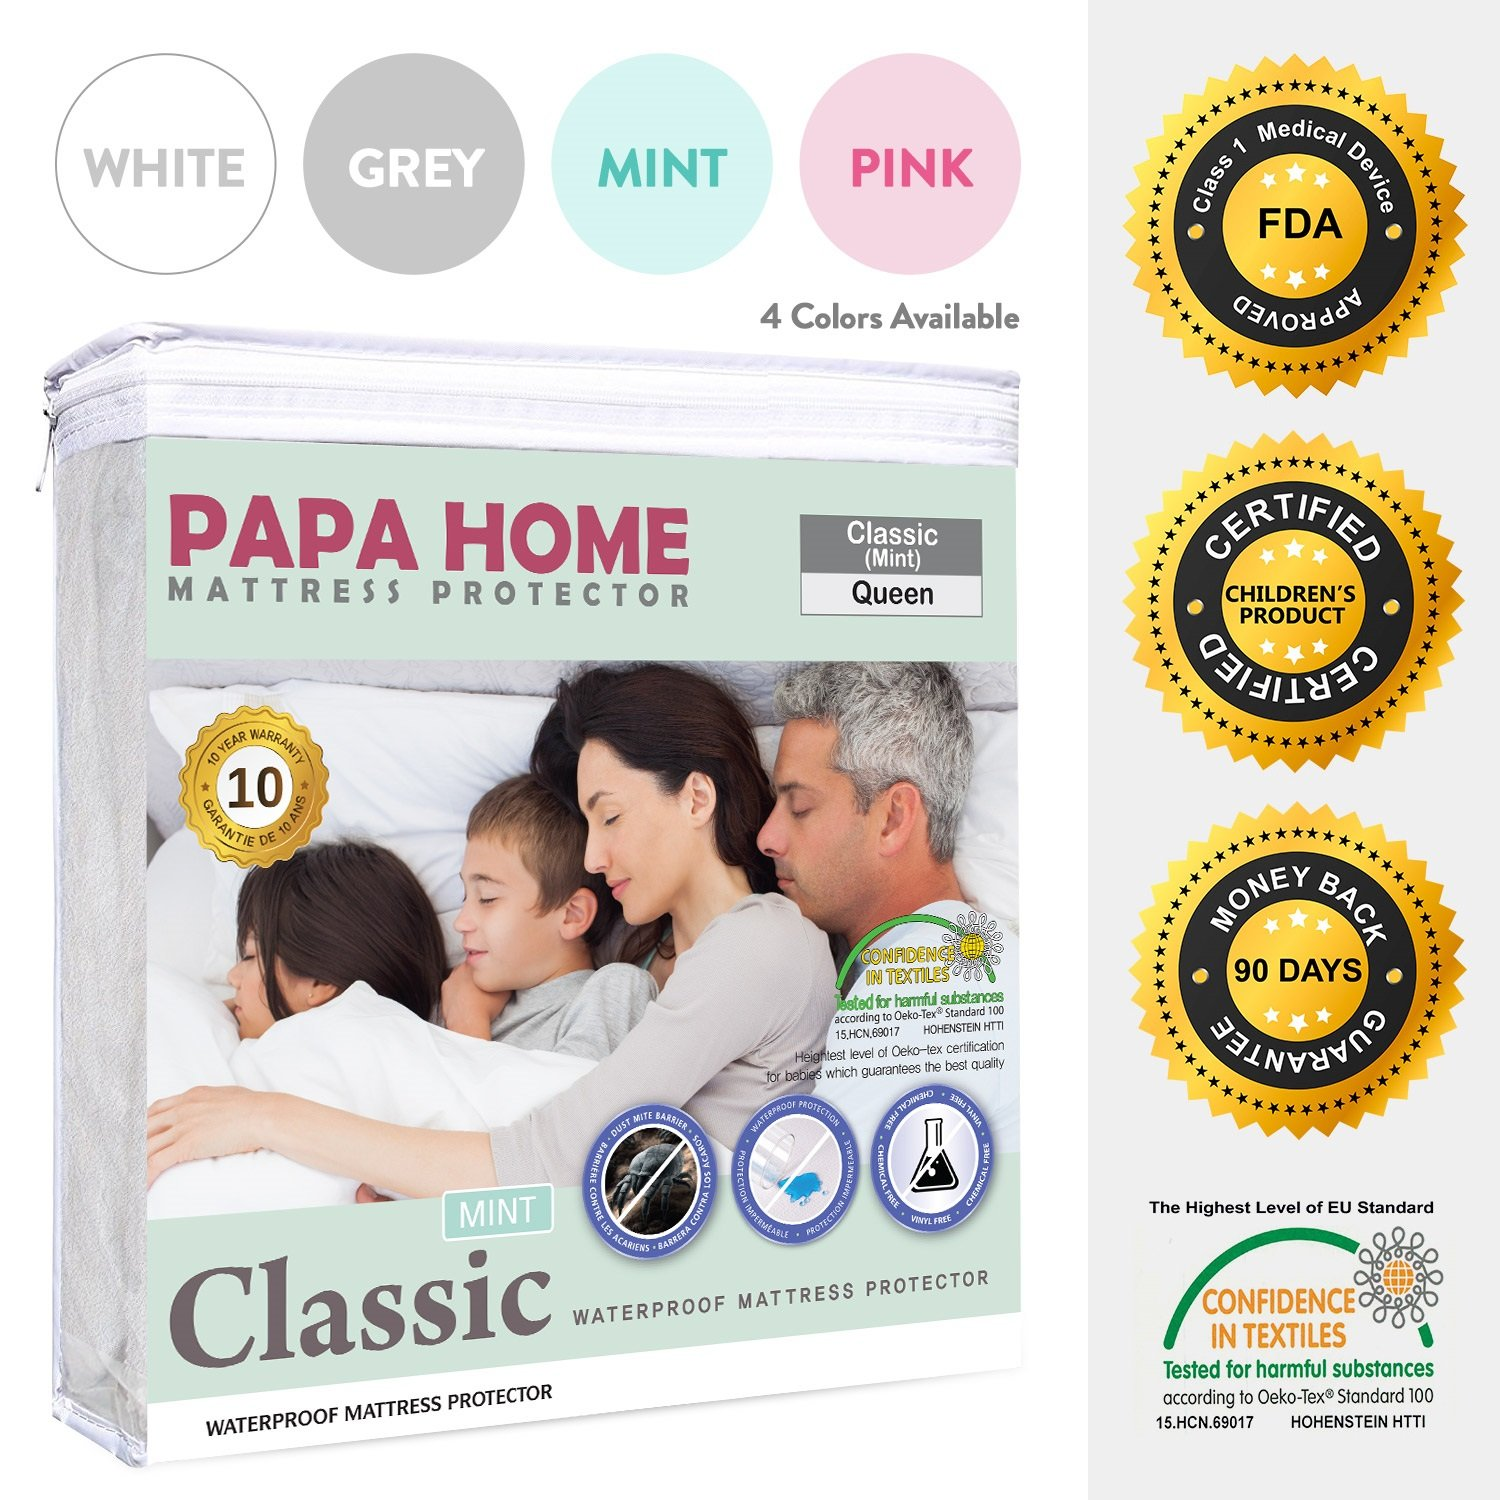 Papahome Classic Hypoallergenic Mattress Protector - Lab Tested Waterproof - Fitted Polyester Jersey Cover - Vinyl Free - 4 Different Colors Available (Twin, Mint)